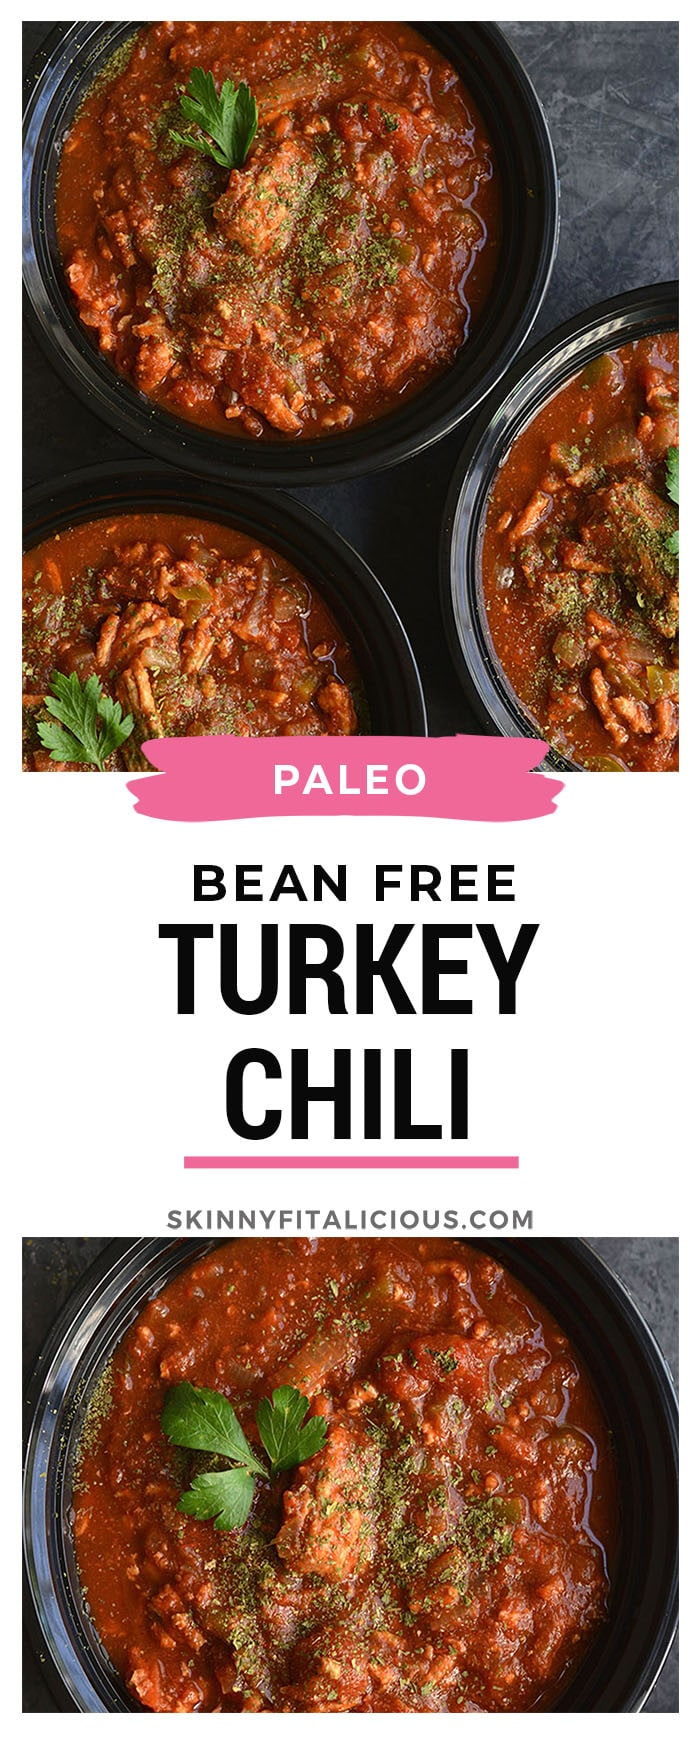 Meal Prep Clean Eating Turkey Chili is Paleo and Whole30 compliant. Made in one pot or a crockpot for an EASY lunch or dinner that's wholesome and satisfying. Paleo, Gluten Free, Low Calorie, Whole30